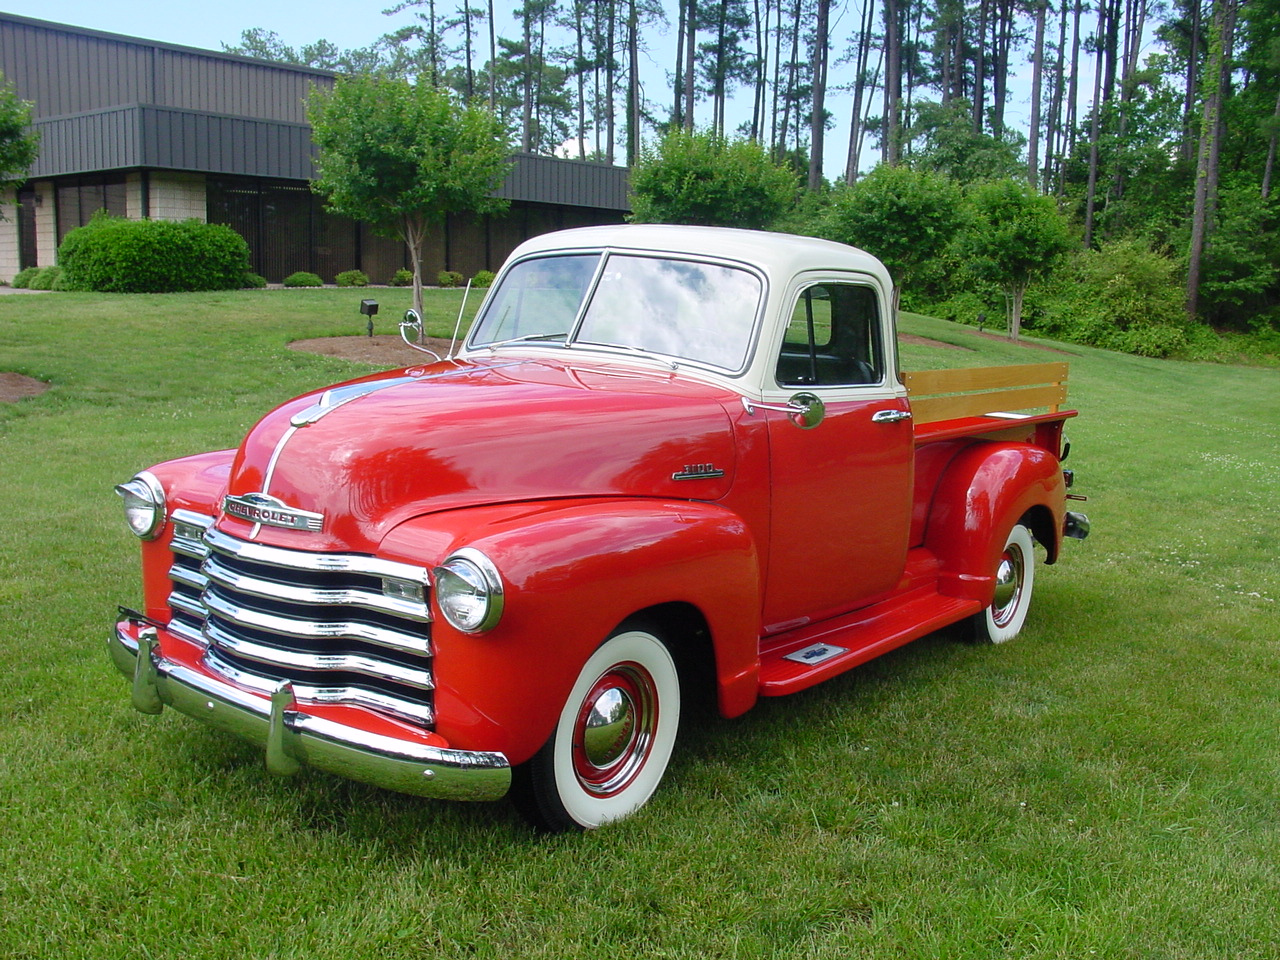 53 Chevrolet Pickup 1950 American Motors Wiring Diagram